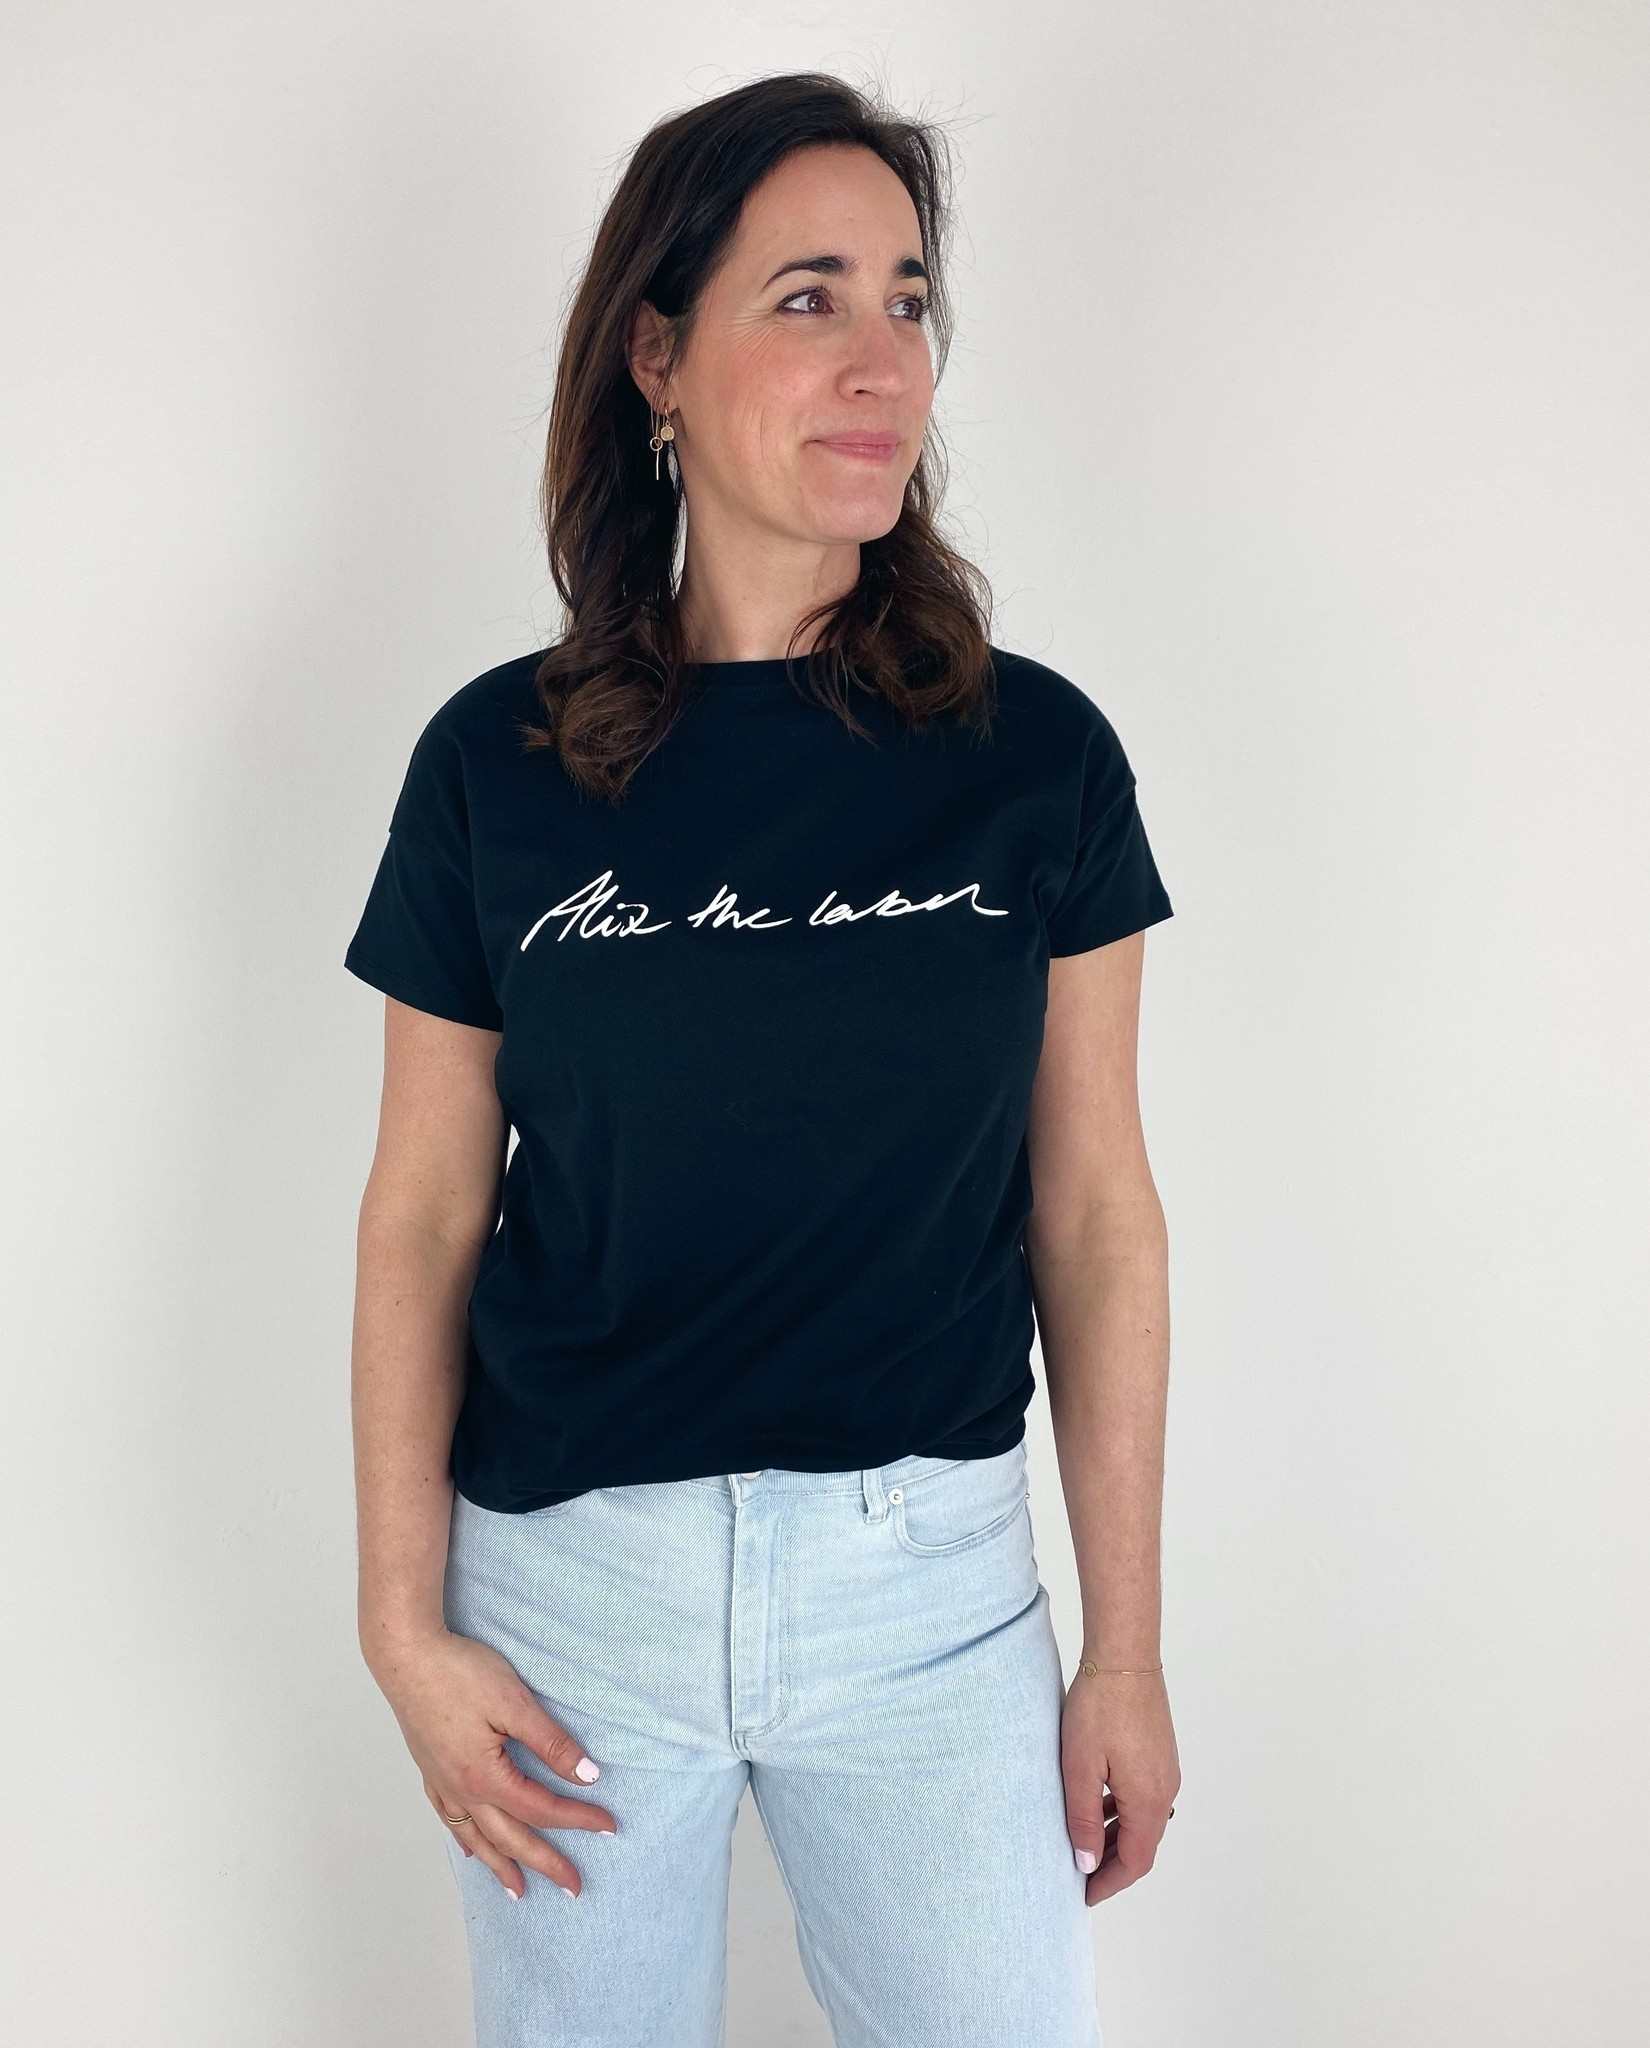 T-shirt ladies knitted Alix the label T-shirt black-3